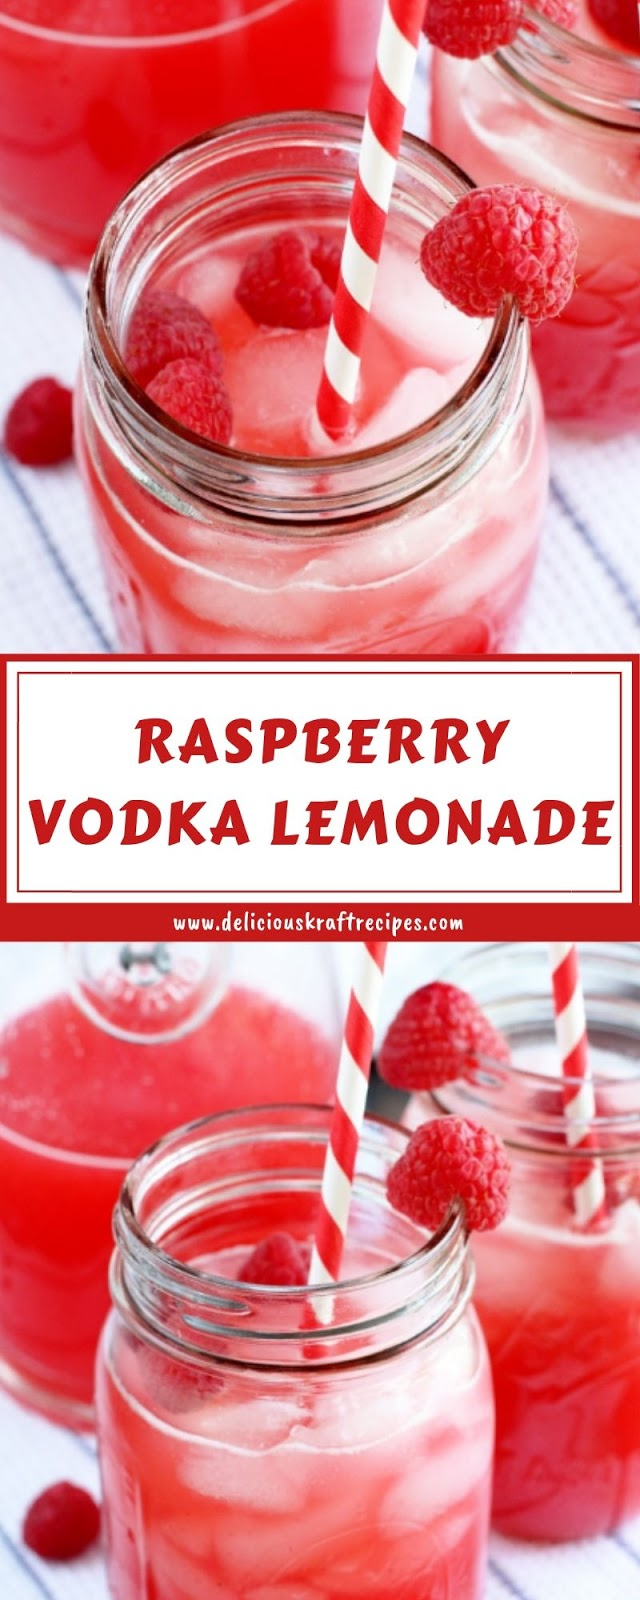 RASPBERRY VODKA LEMONADE #raspberryvodka RASPBERRY VODKA LEMONADE #raspberryvodka